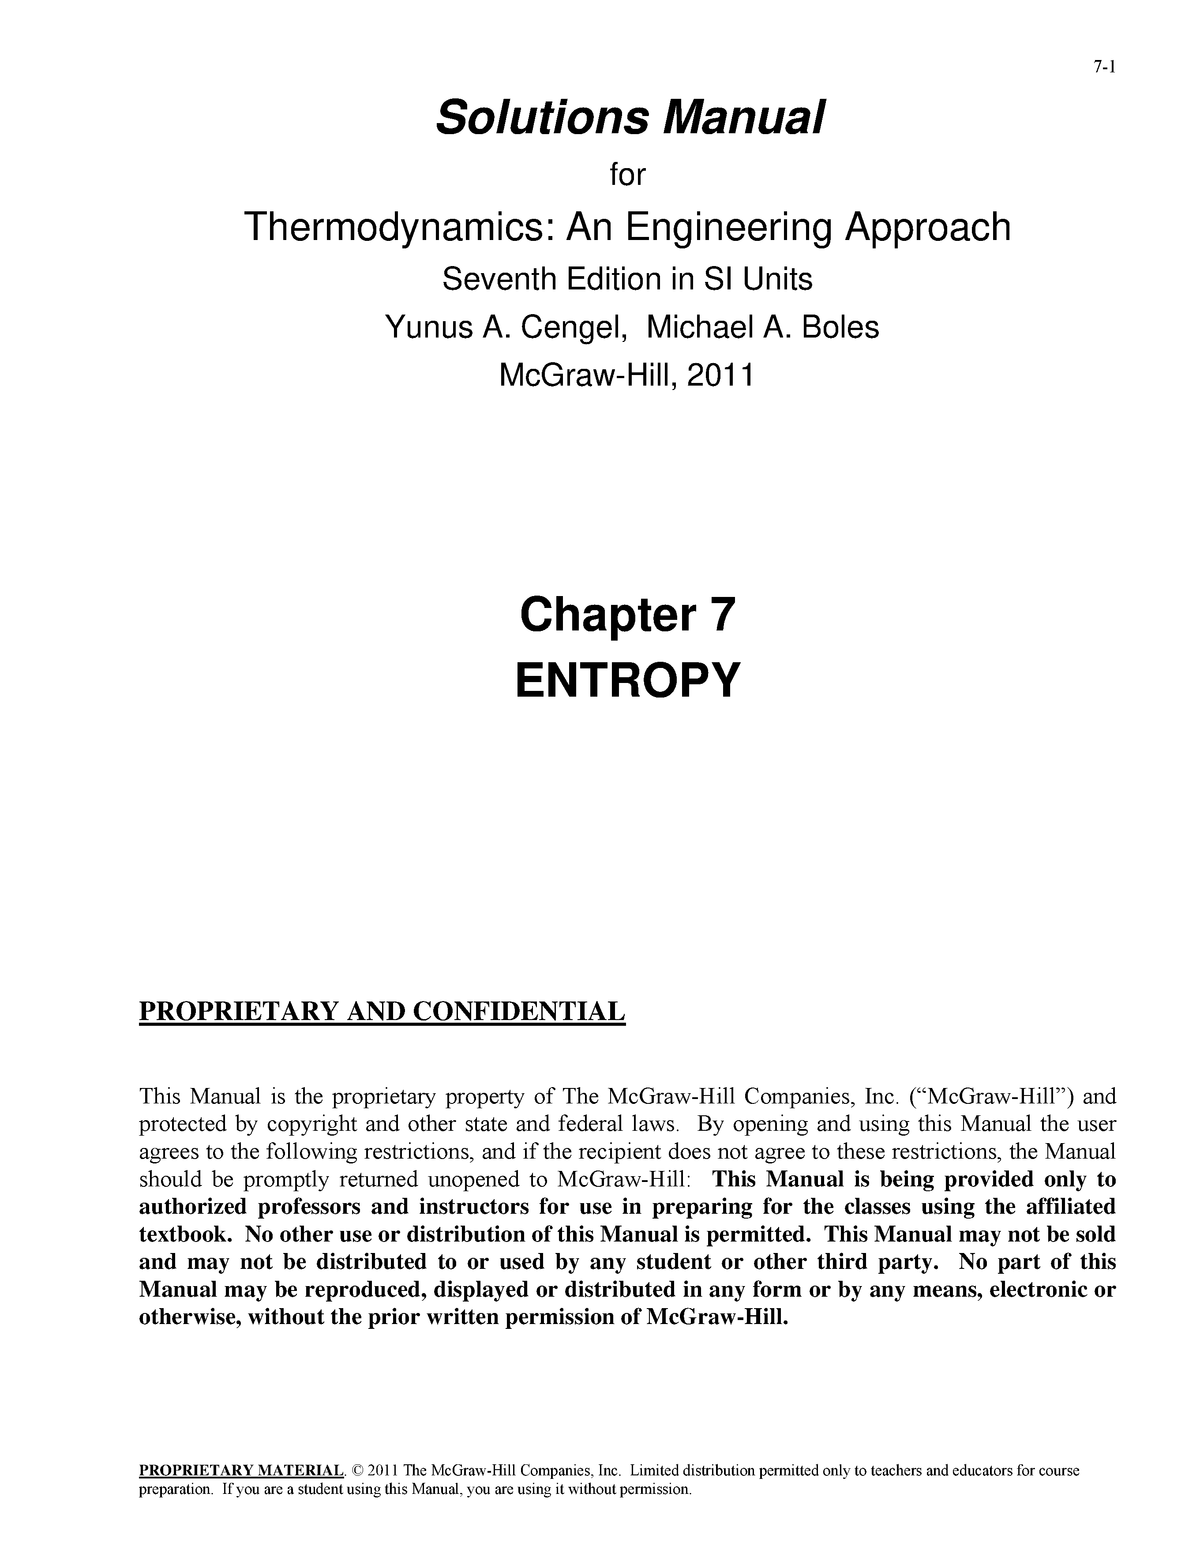 Thermodynamics An Engineering Approach 9th Edition Pdf